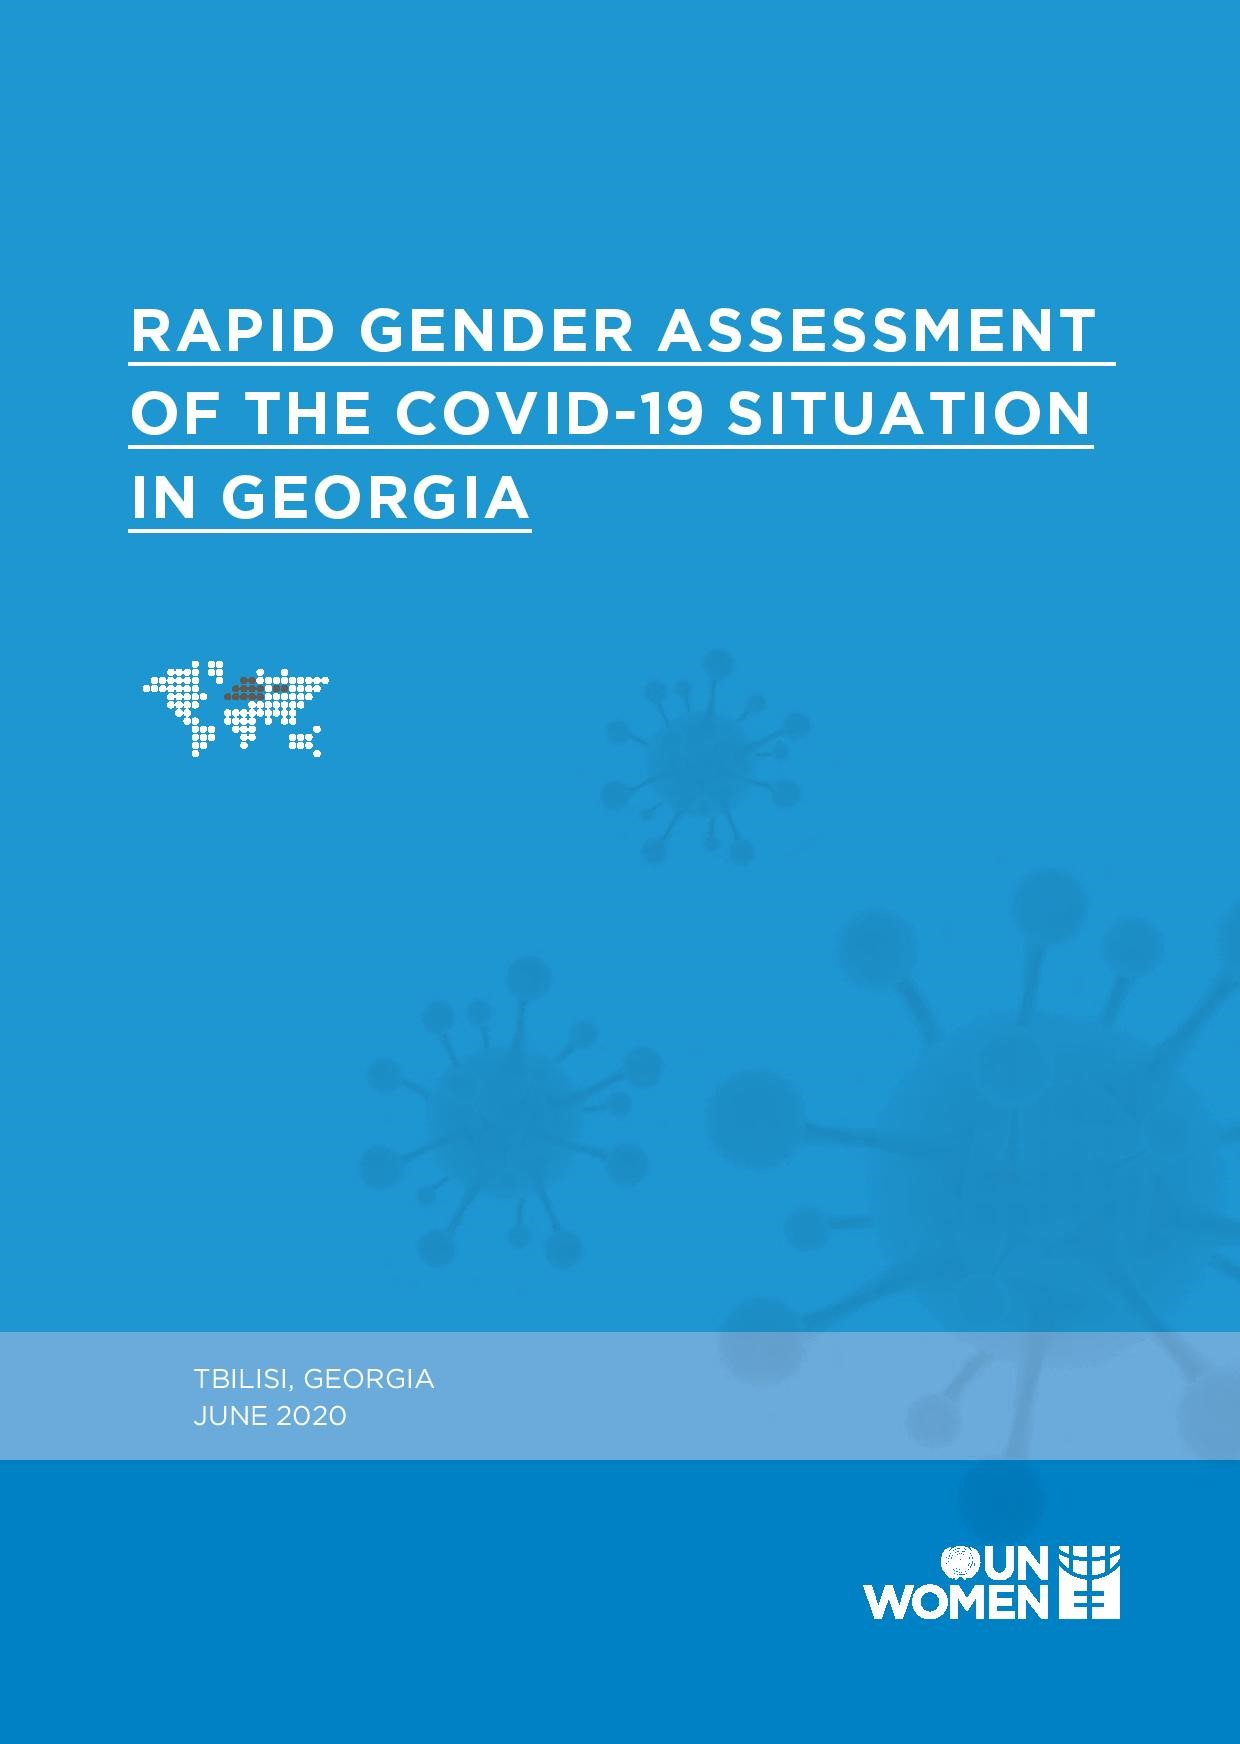 Rapid Gender Assessment of the COVID-19 Situation in Georgia